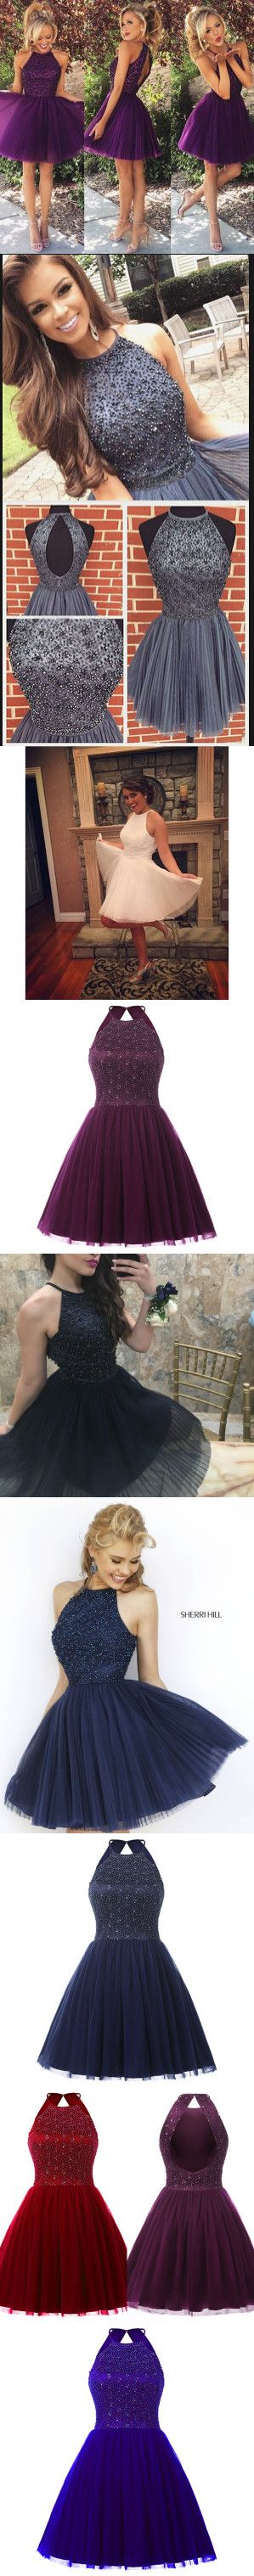 2016 Homecoming Dresses for Summer 8th Grade Pageant Girls Back to School Sweet 16 Graduation Miss Teen USA Fashion Ball Prom Cocktail Gowns